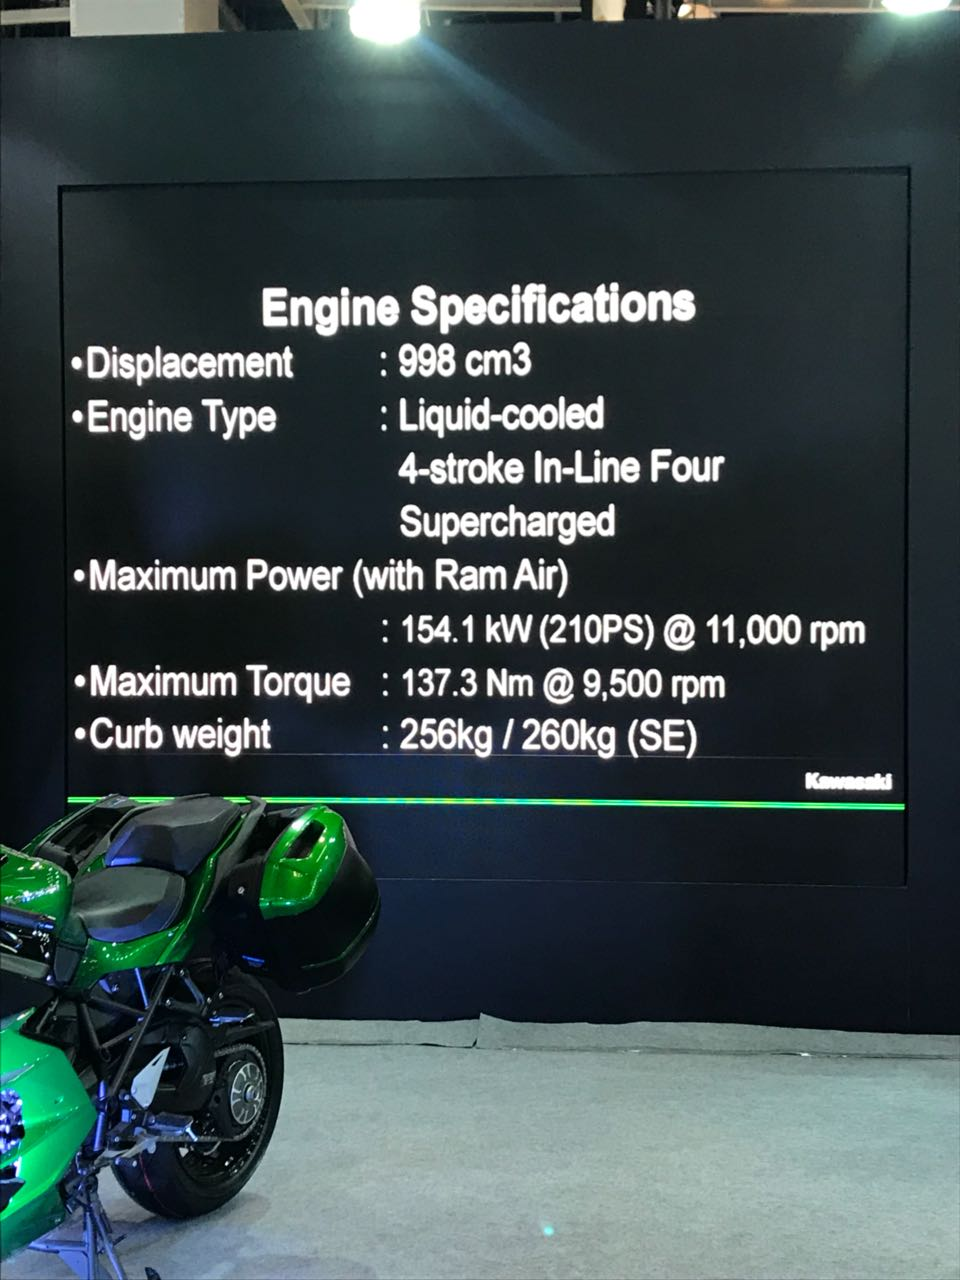 <p>Here are the engine specifications of the Kawasaki Vulcan S</p>